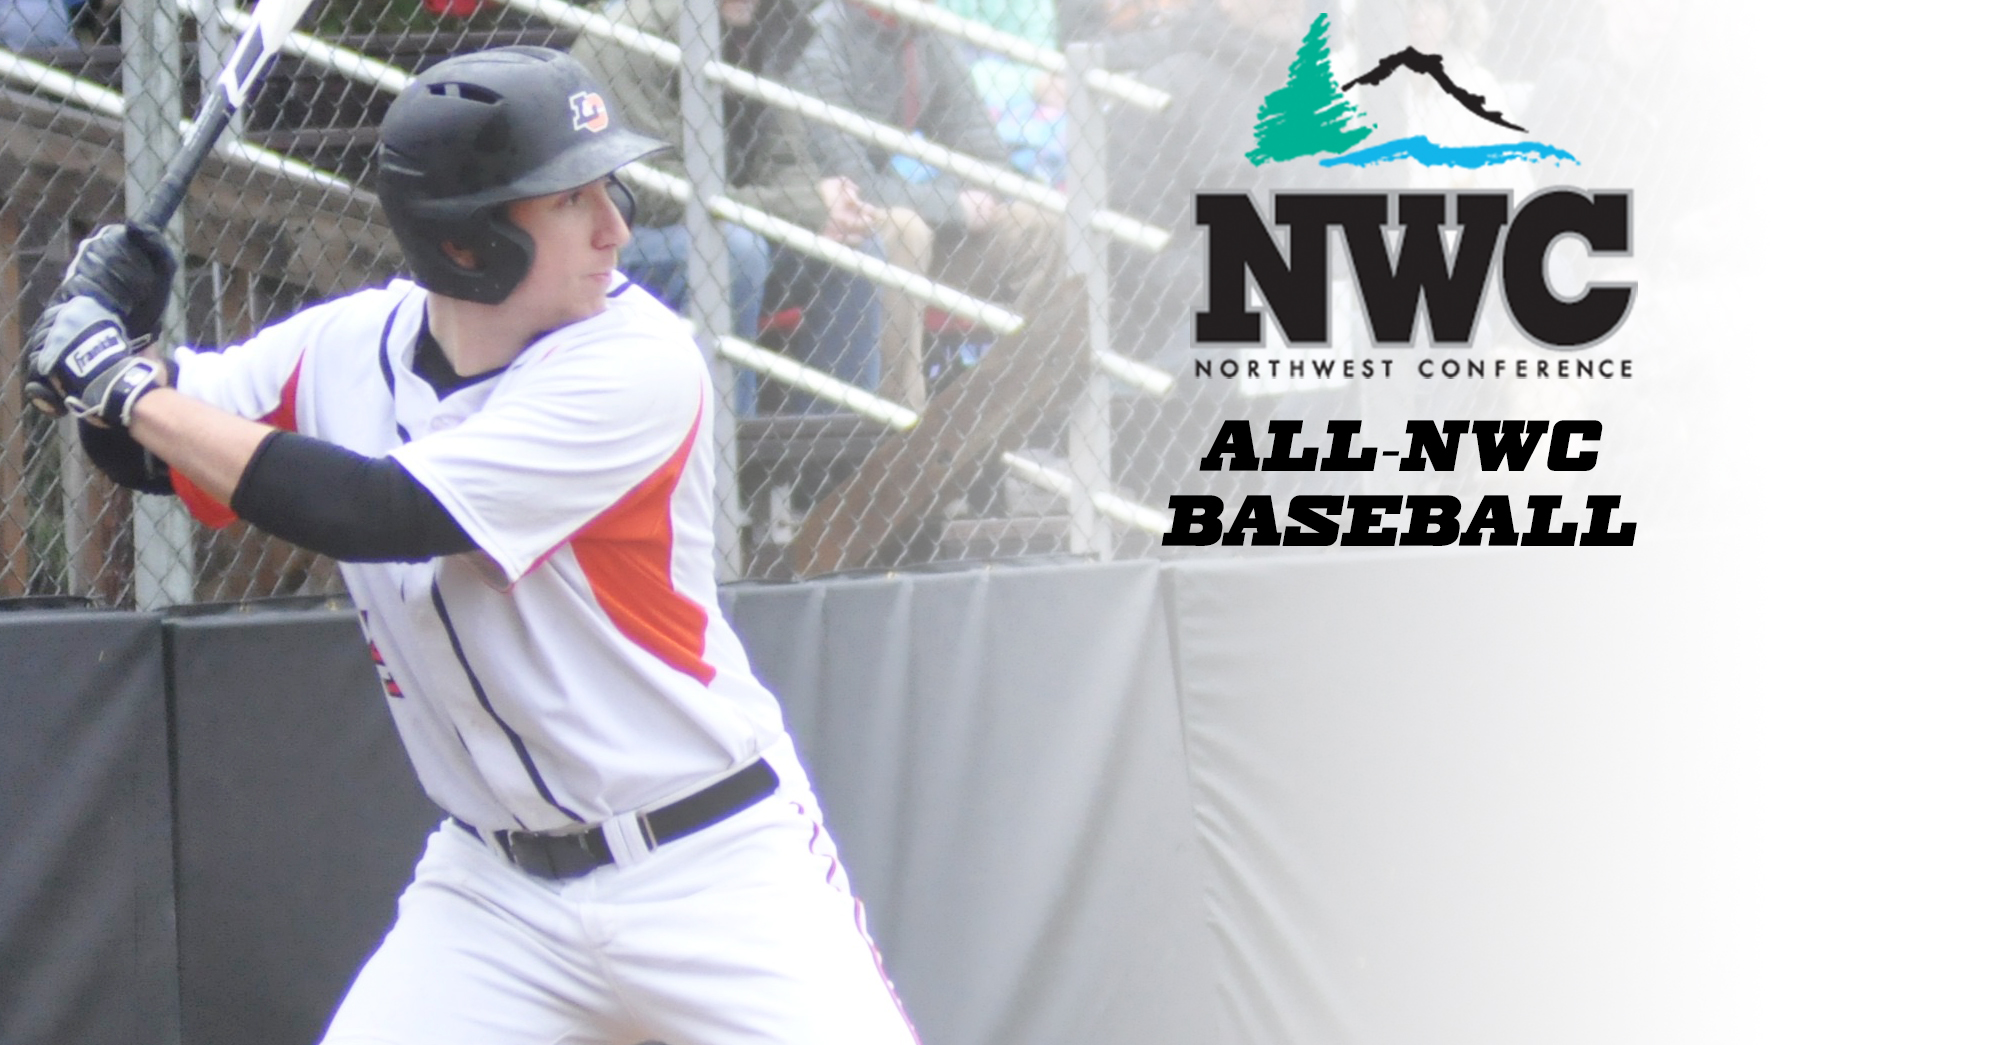 Shepherd makes All-NWC Second Team, three earn honorable mention